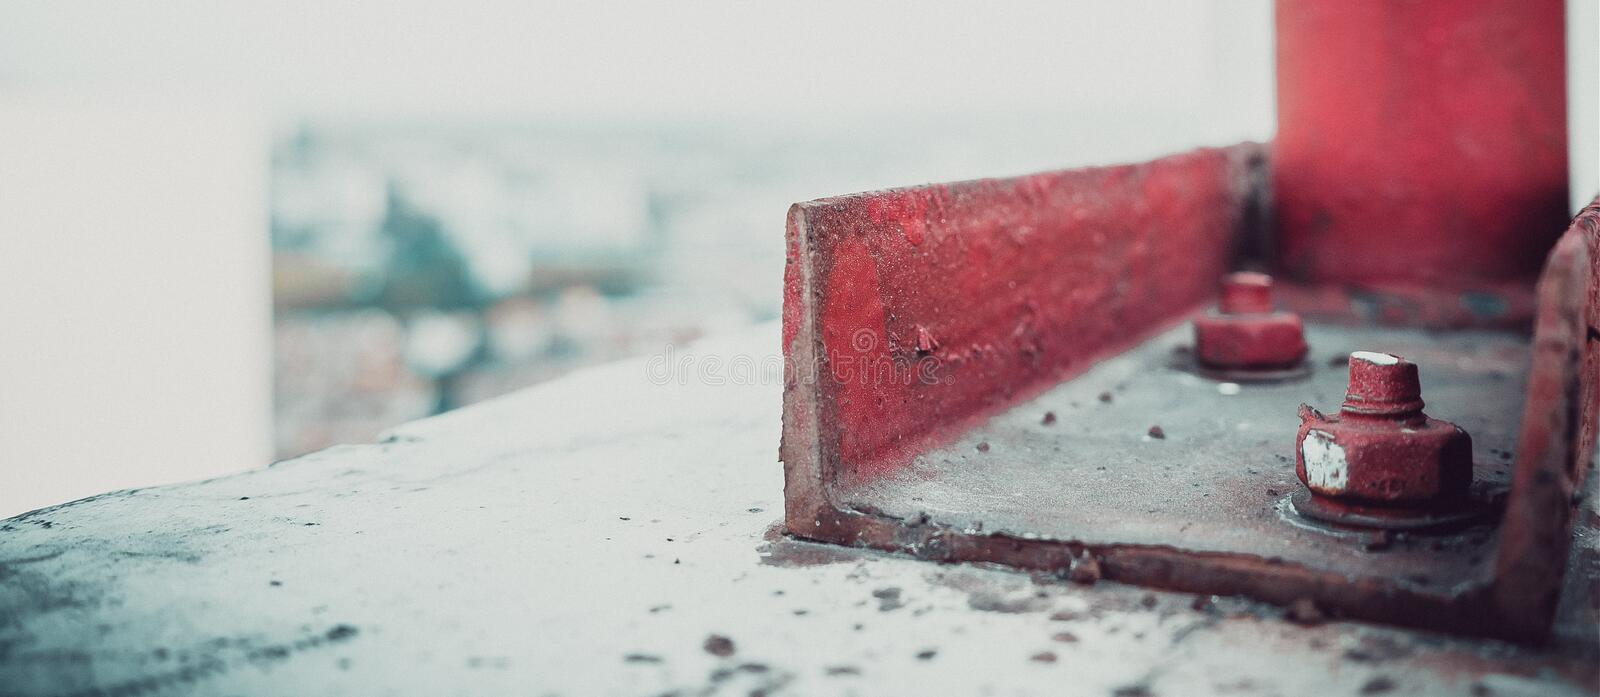 Red bolt on the rooftop stock photography